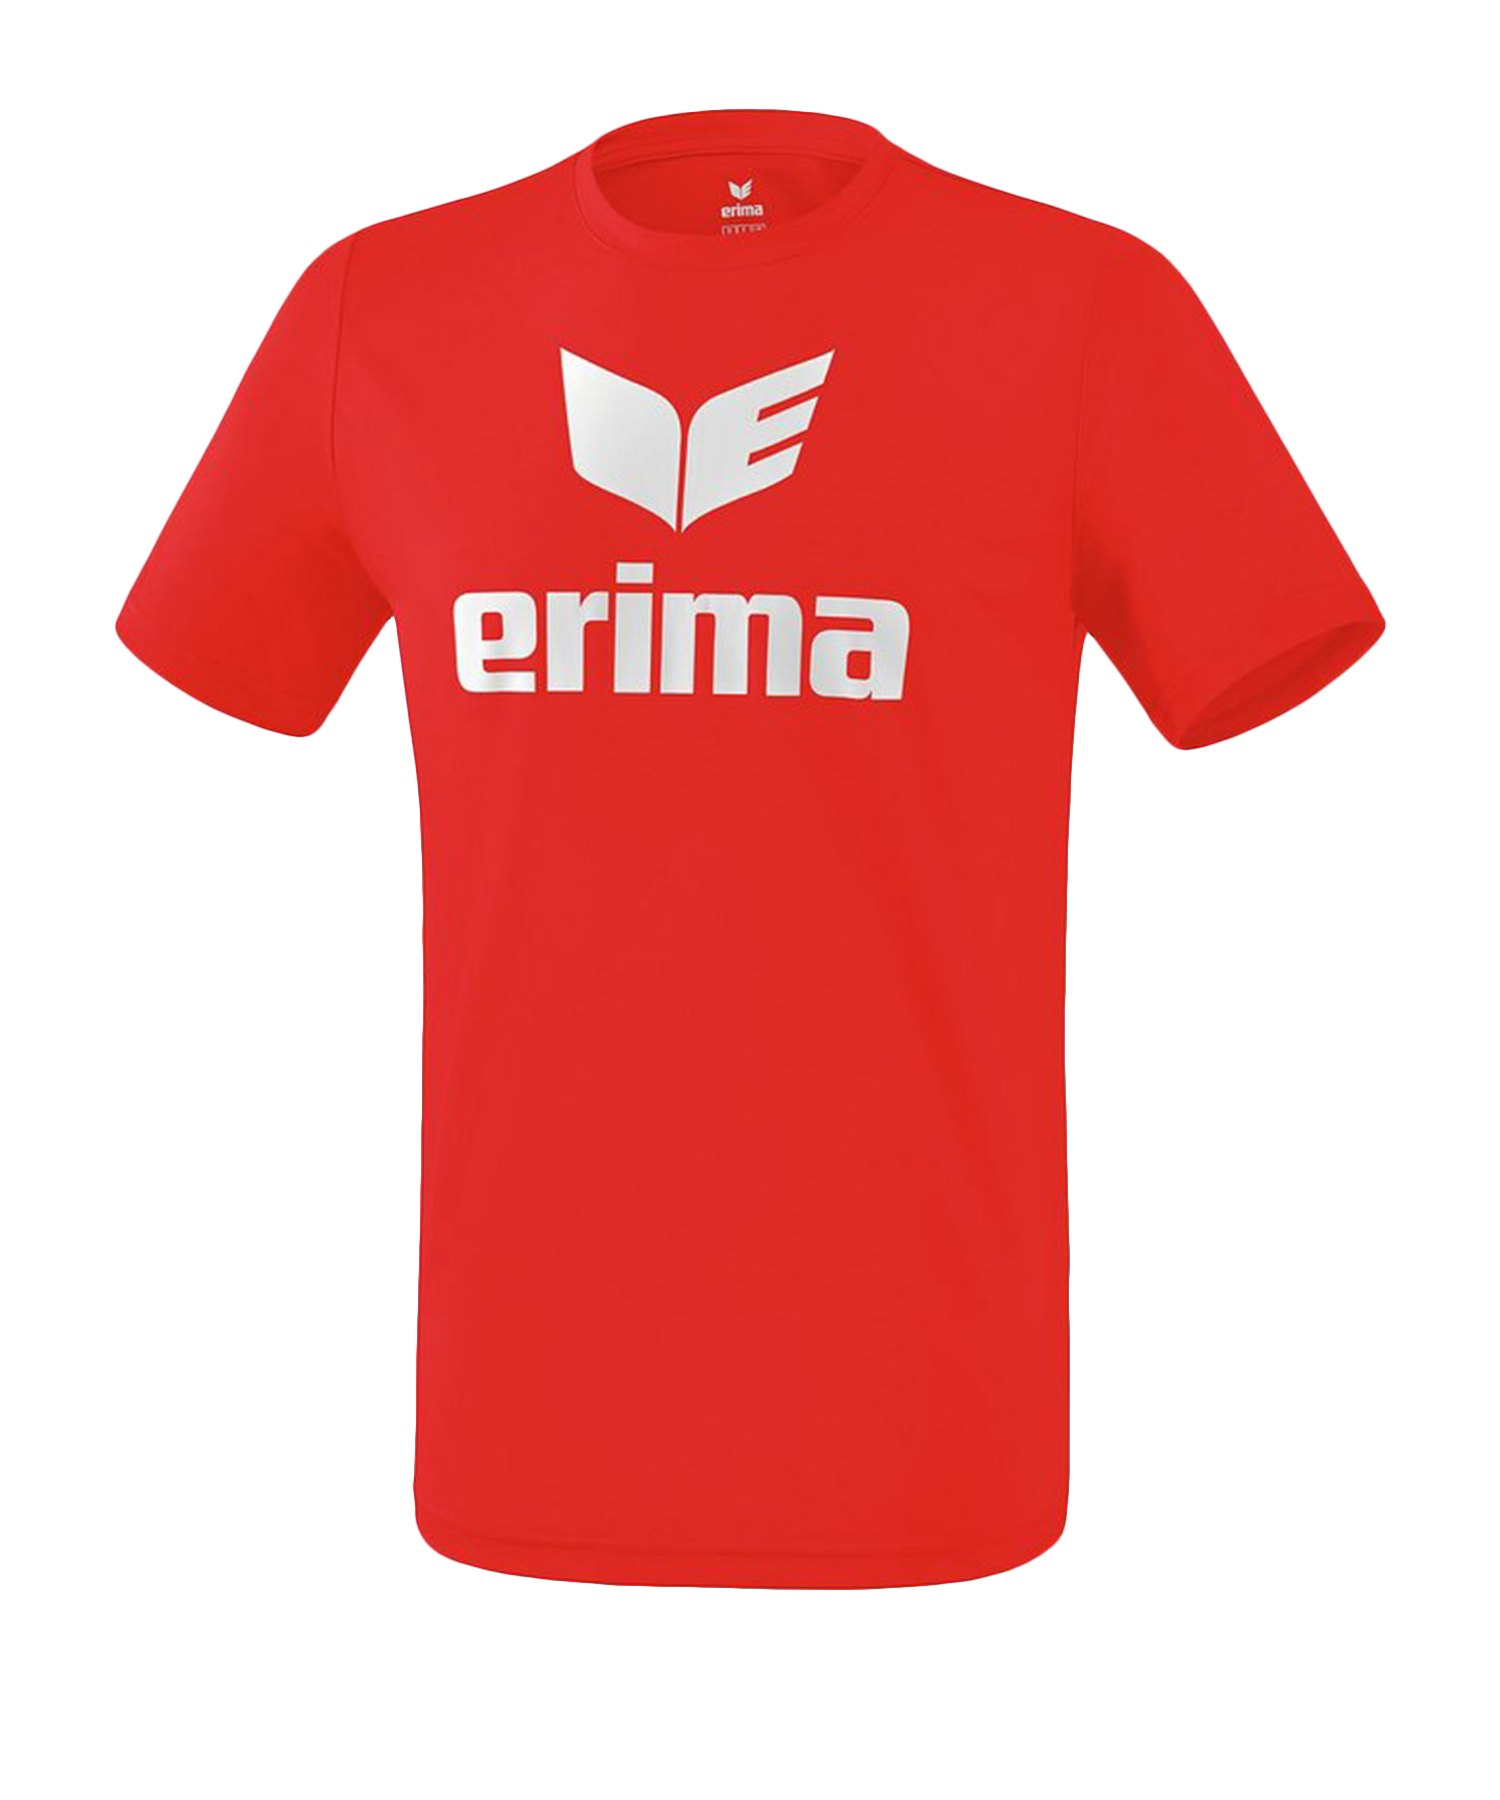 Erima Funktions Promo T-Shirt Kids Rot Weiss - Rot